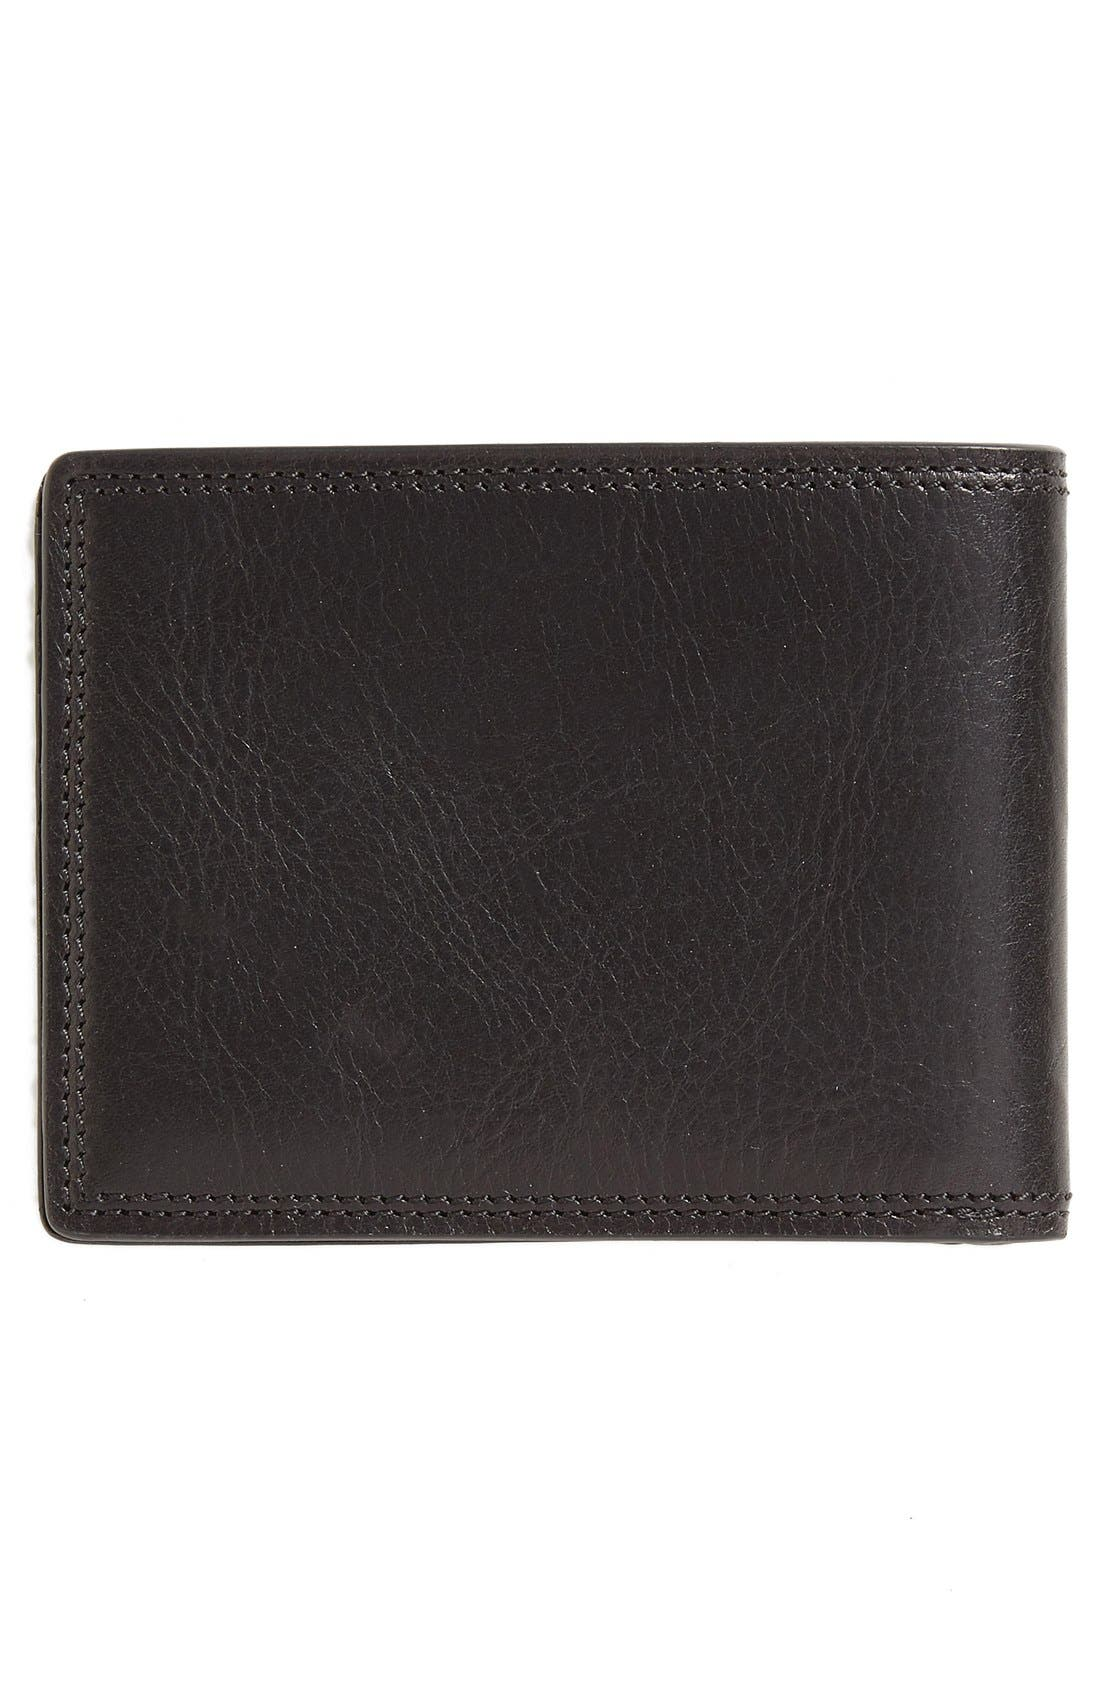 Leather Bifold Wallet,                             Alternate thumbnail 3, color,                             001